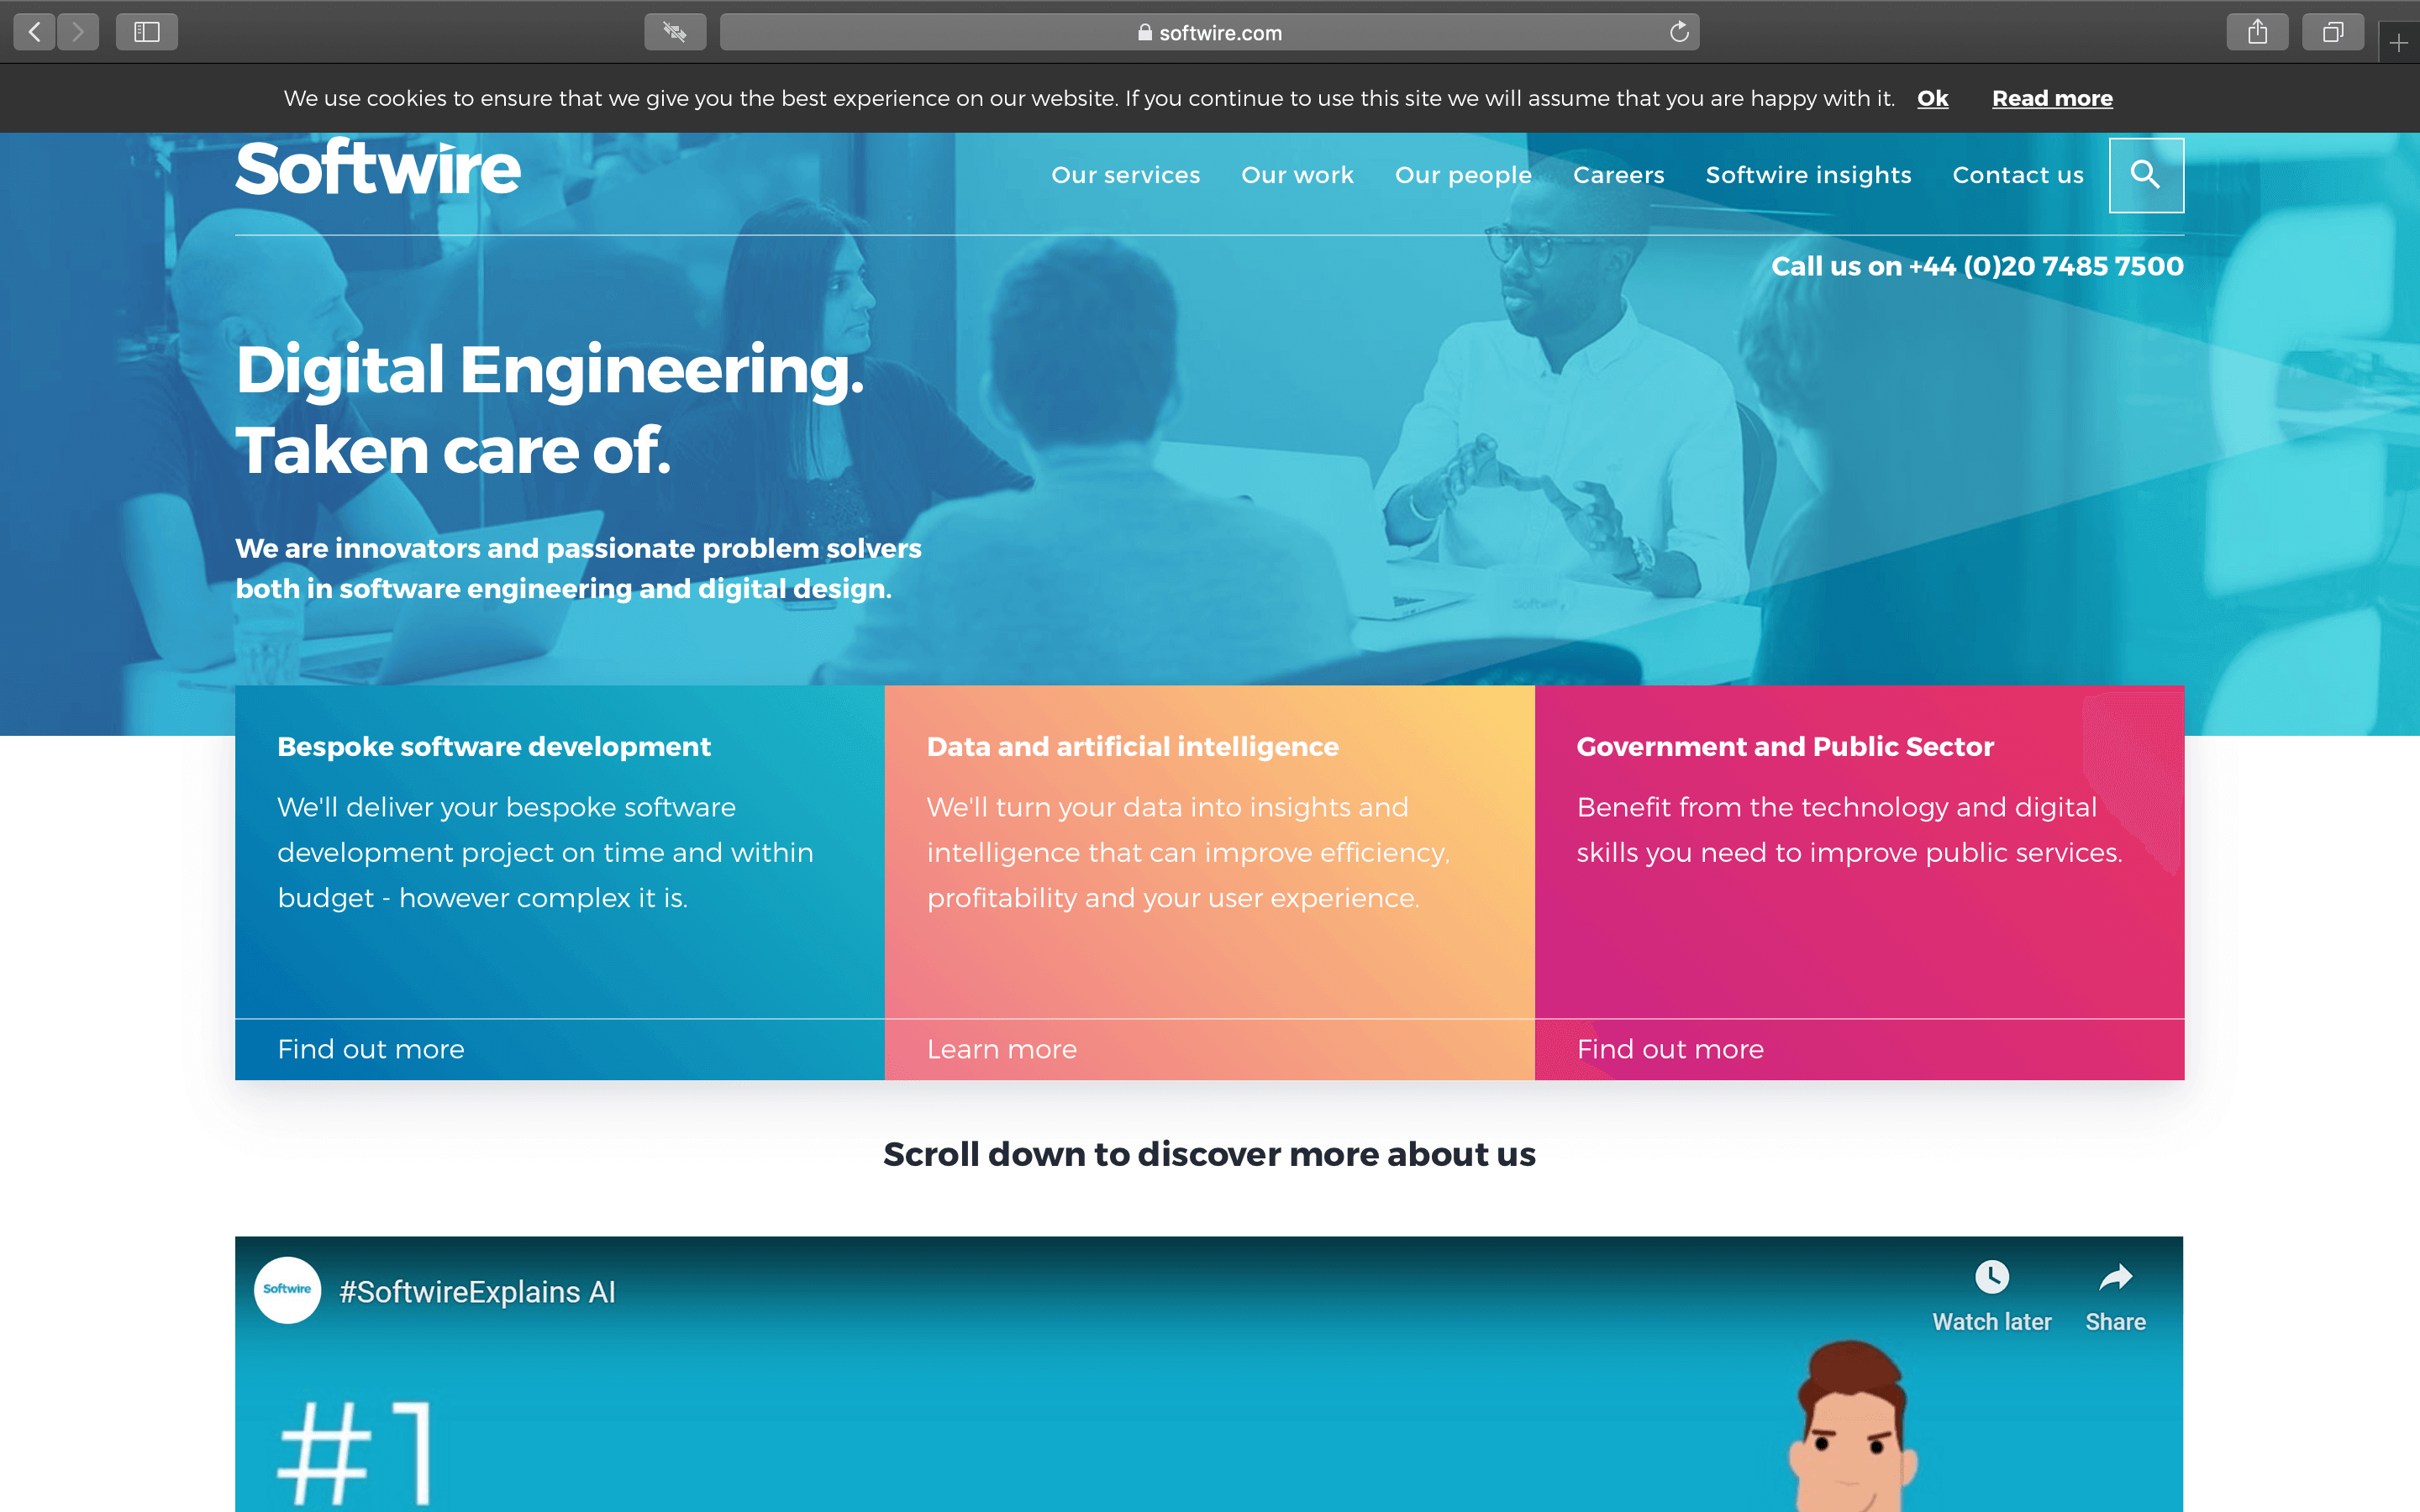 softwire homepage